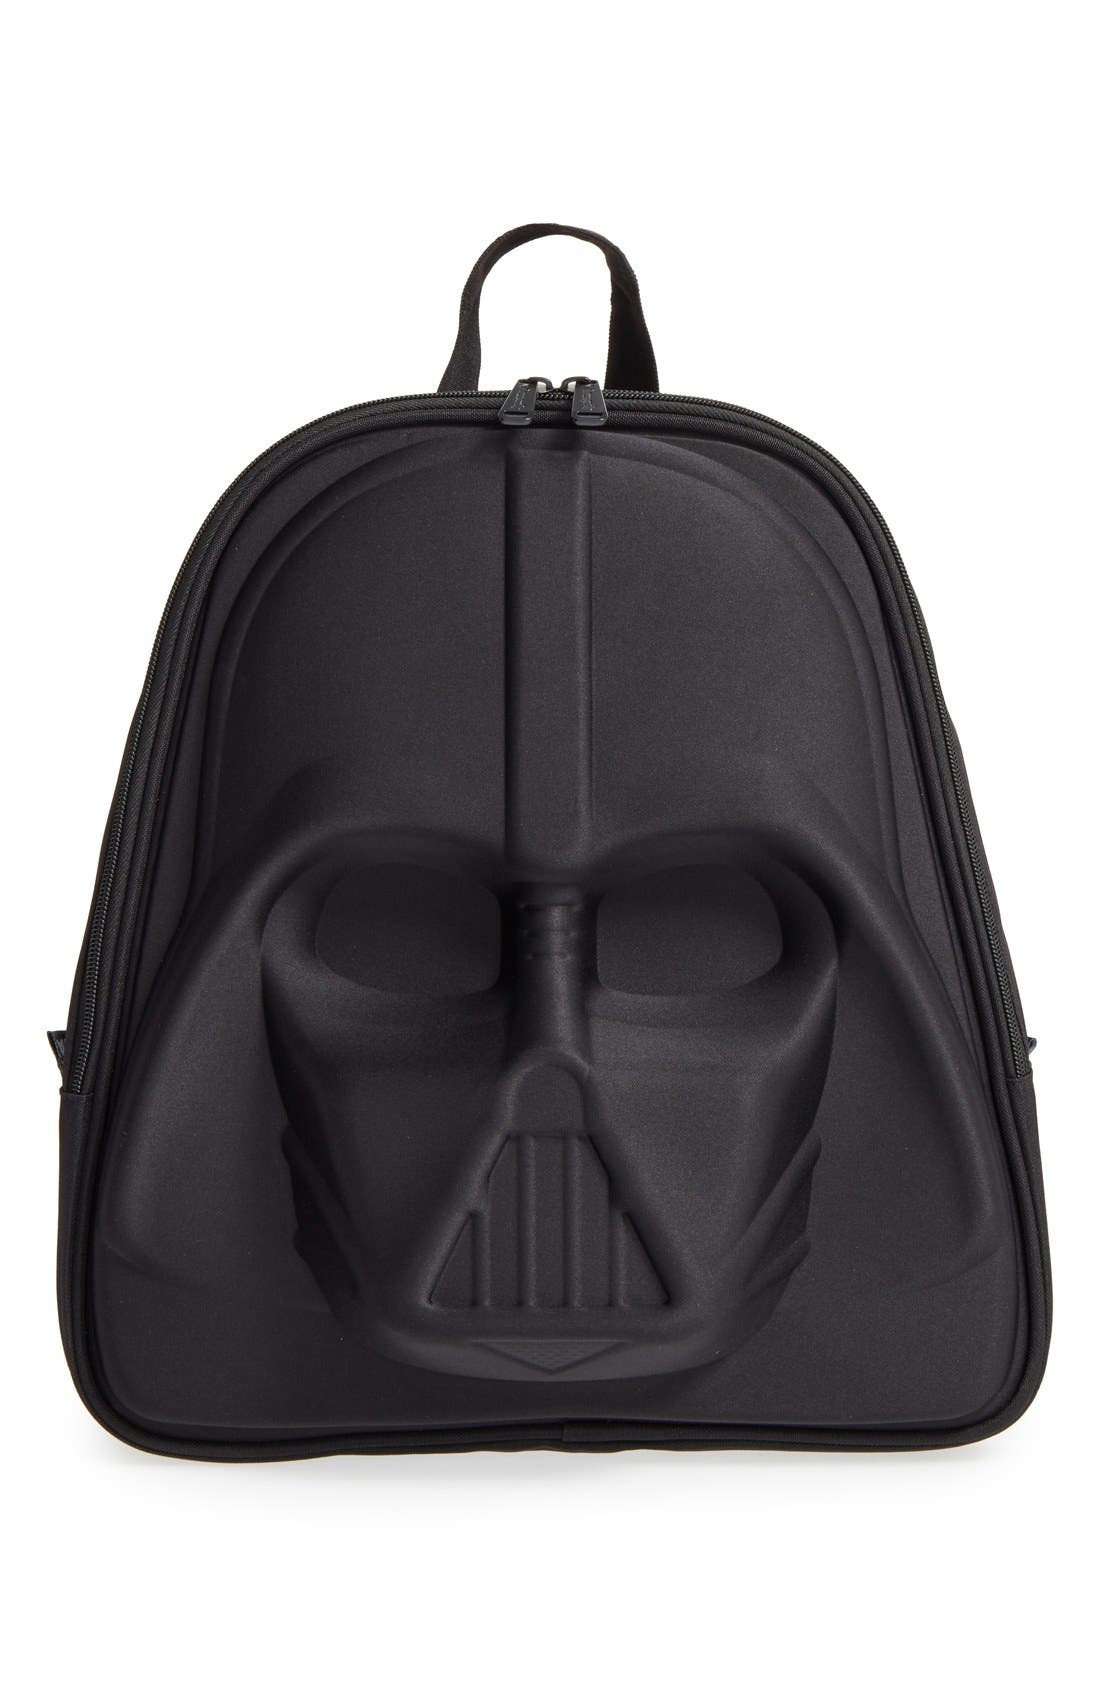 'Star Wars<sup>™</sup> - Darth Vader' Backpack,                         Main,                         color, Black